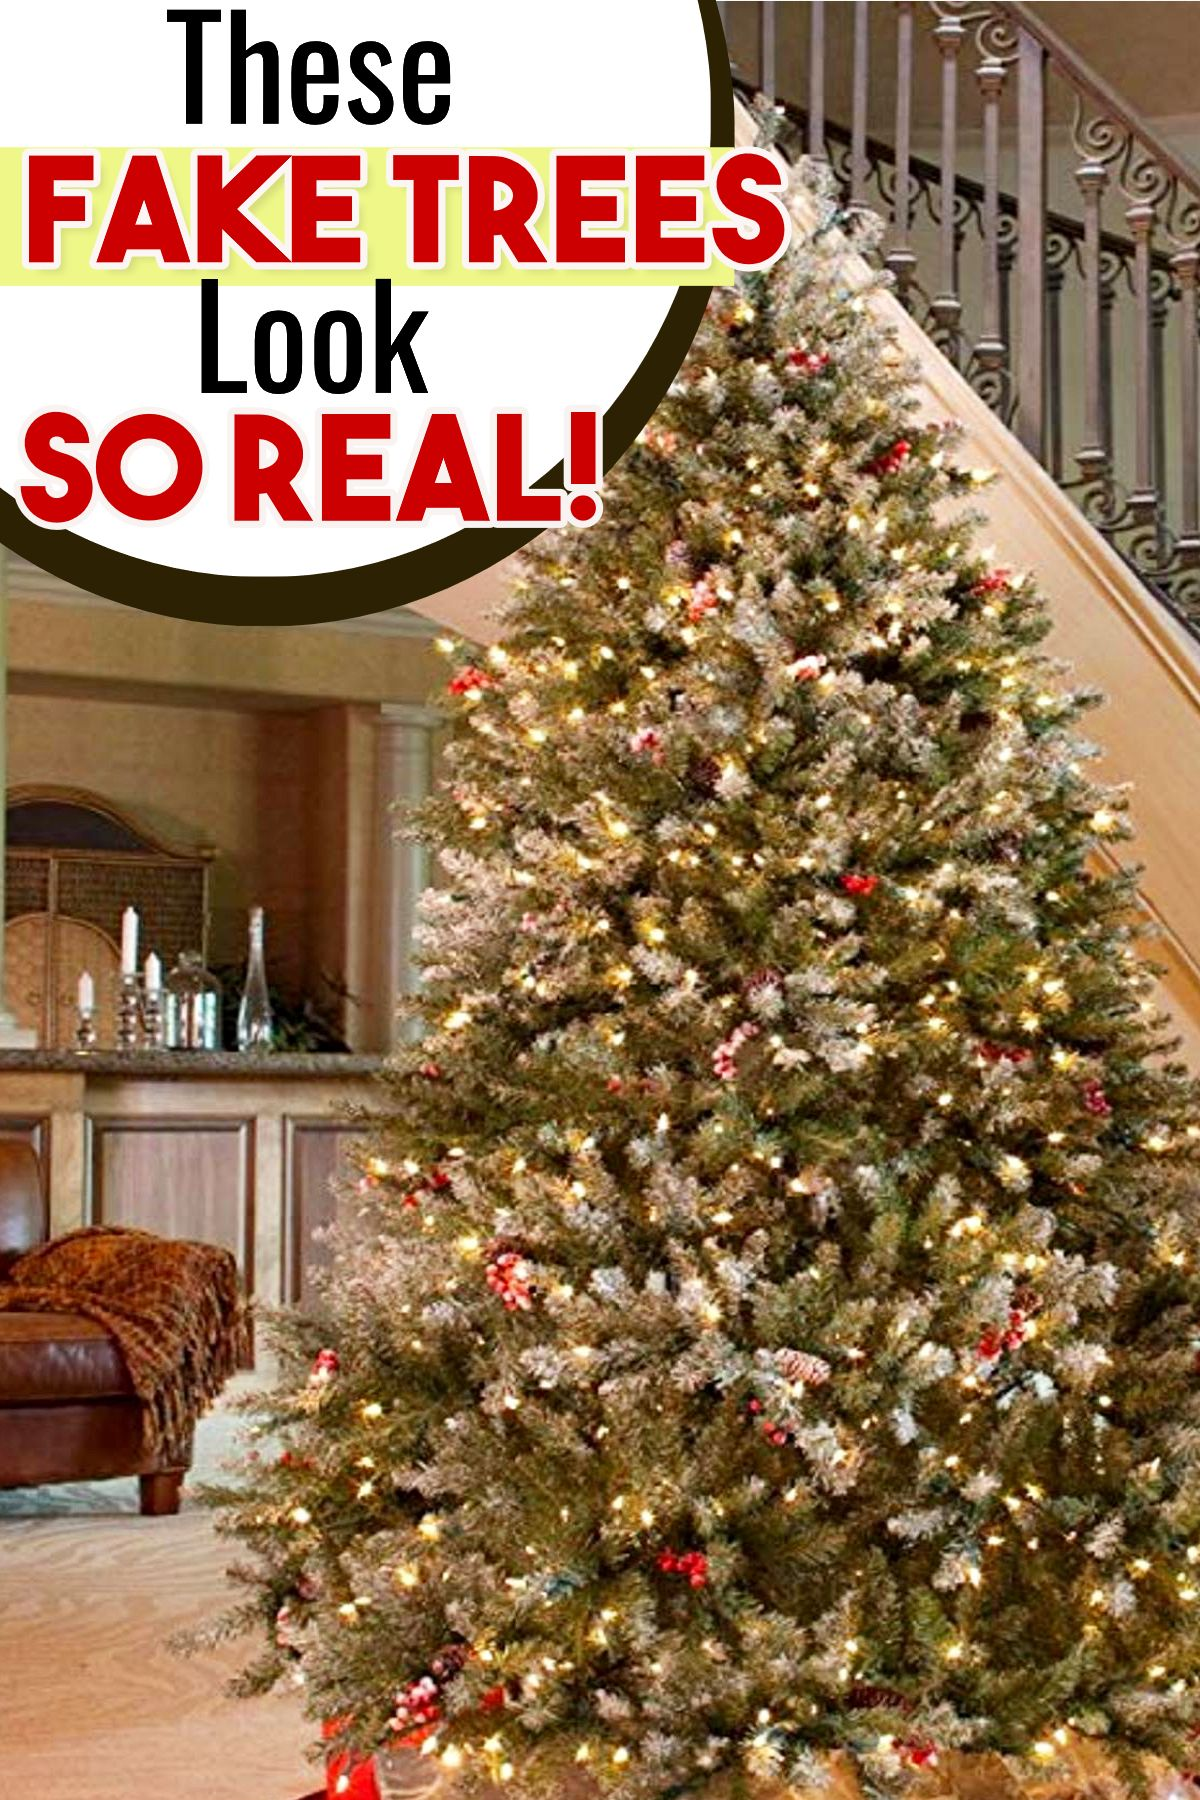 Most Realistic Artificial Christmas Tree Reviews Deals For 2020 Holiday Season Artificial Christmas Tree Realistic Artificial Christmas Trees Fake Christmas Trees